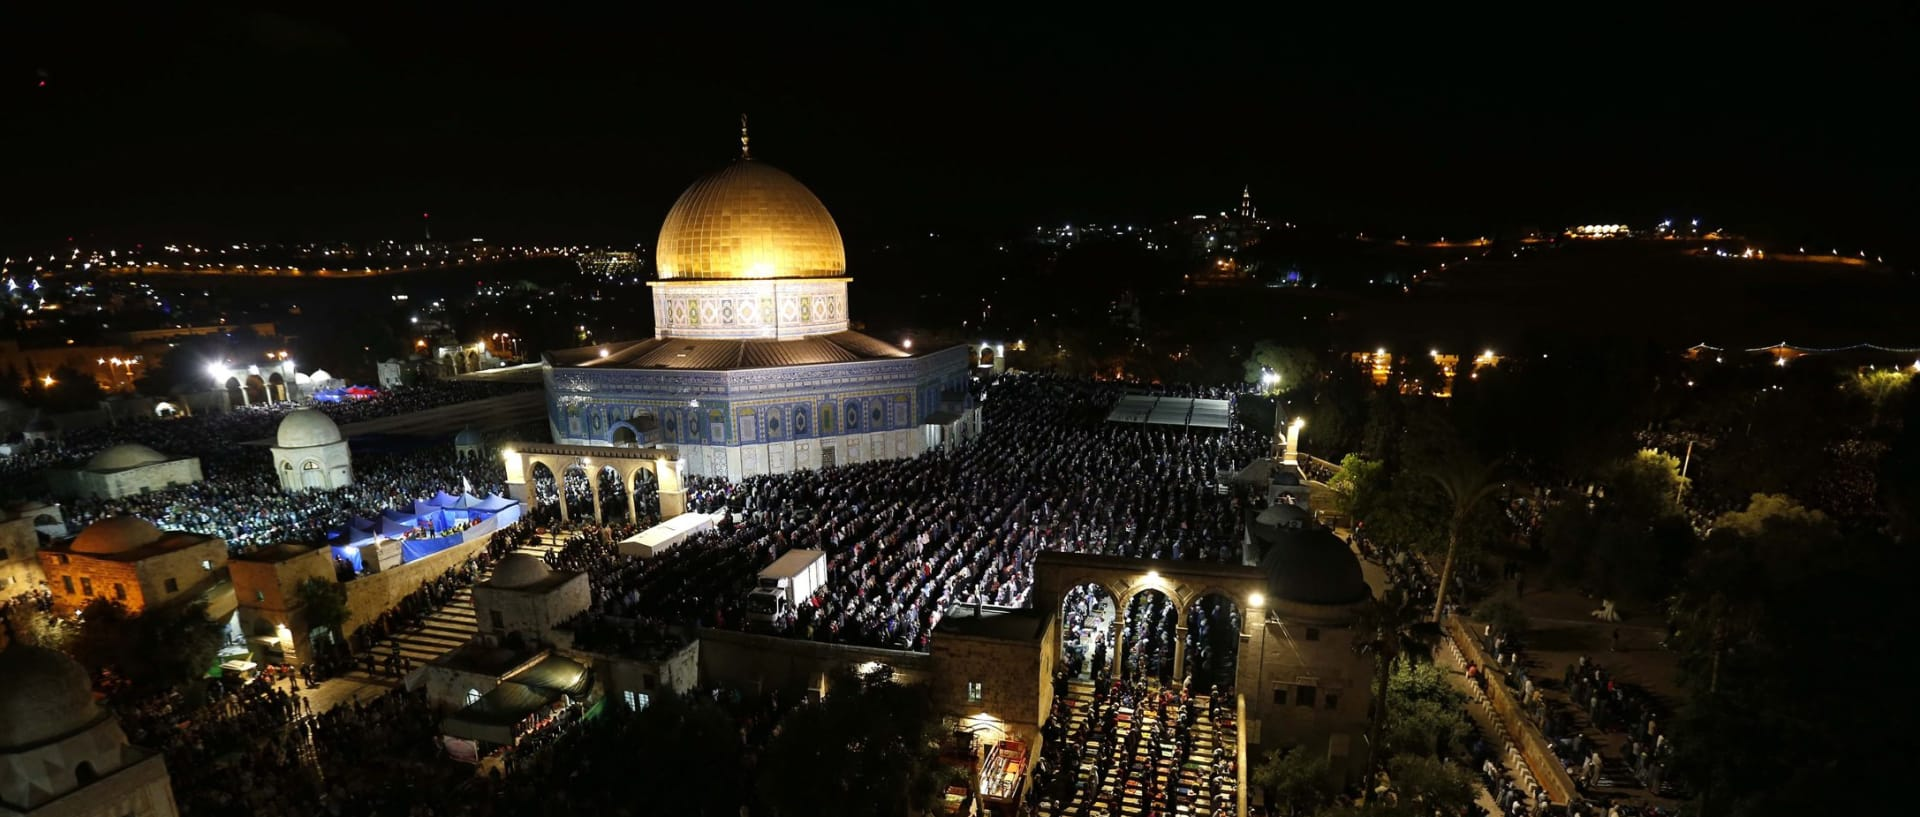 Israeli Researcher Proposes New Explanation to Why Dome of Rock Was Built on Temple Mount